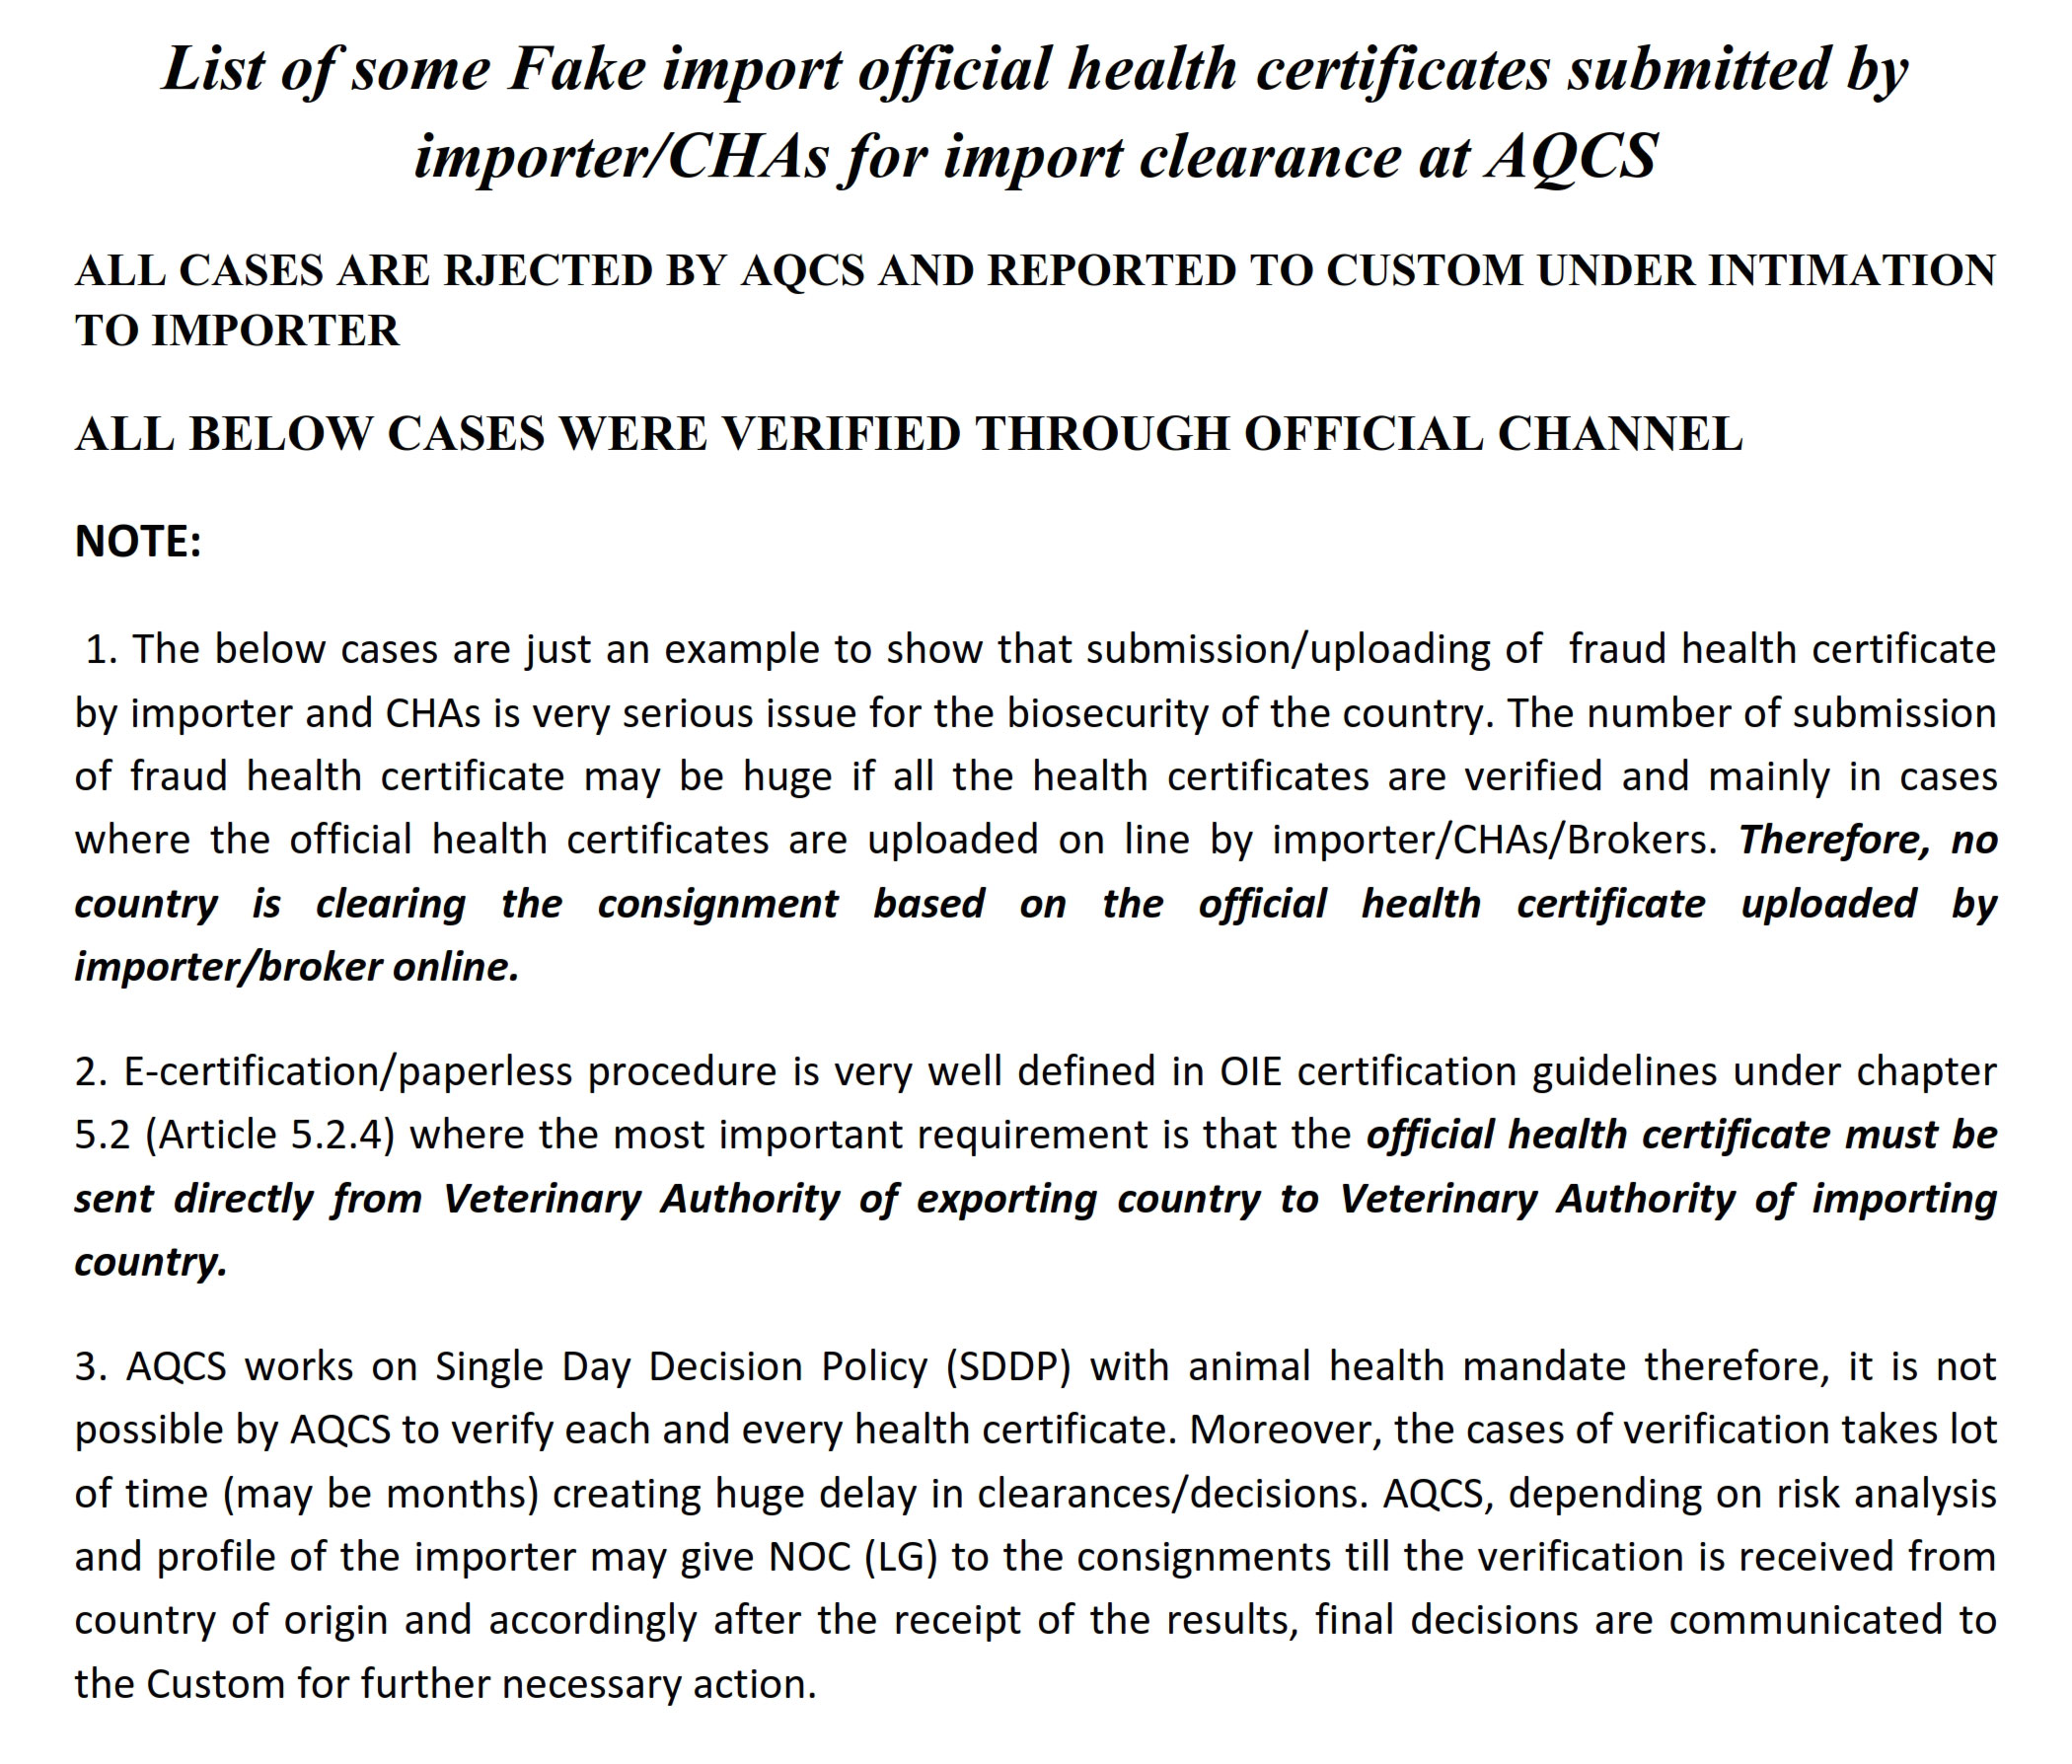 fraude-health-certificates_01 images